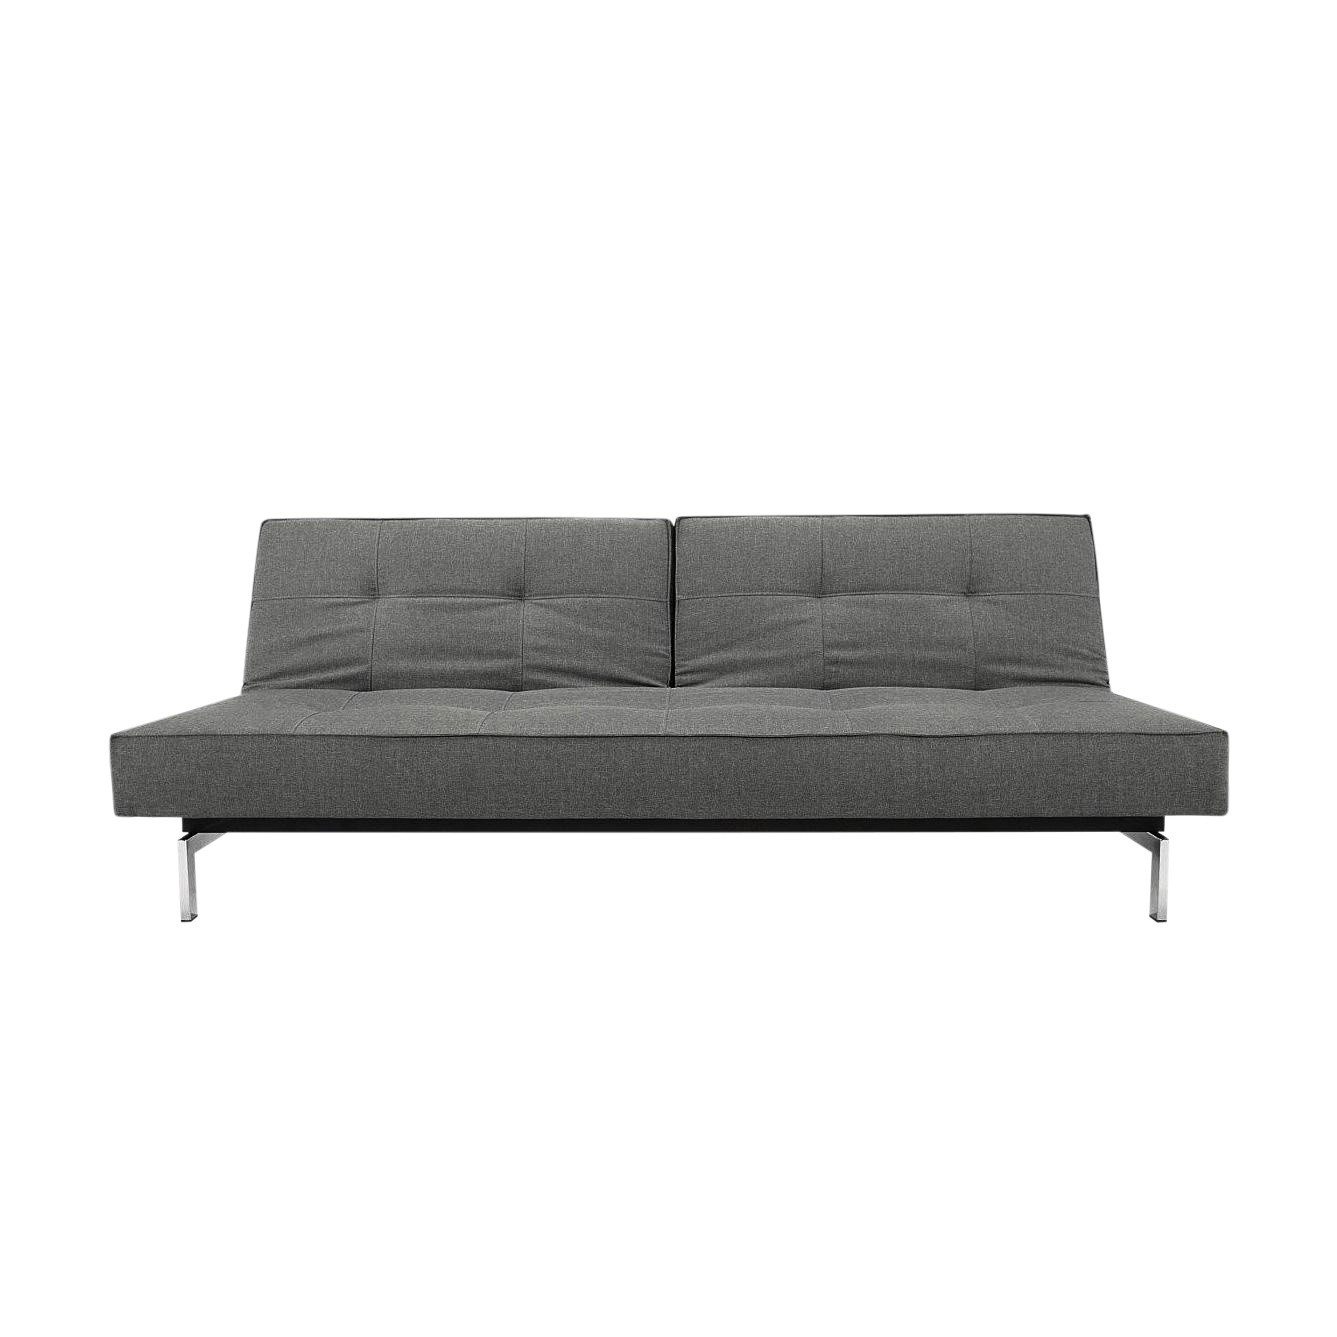 Innovation Splitback Schlafsofa Chrom Ambientedirect